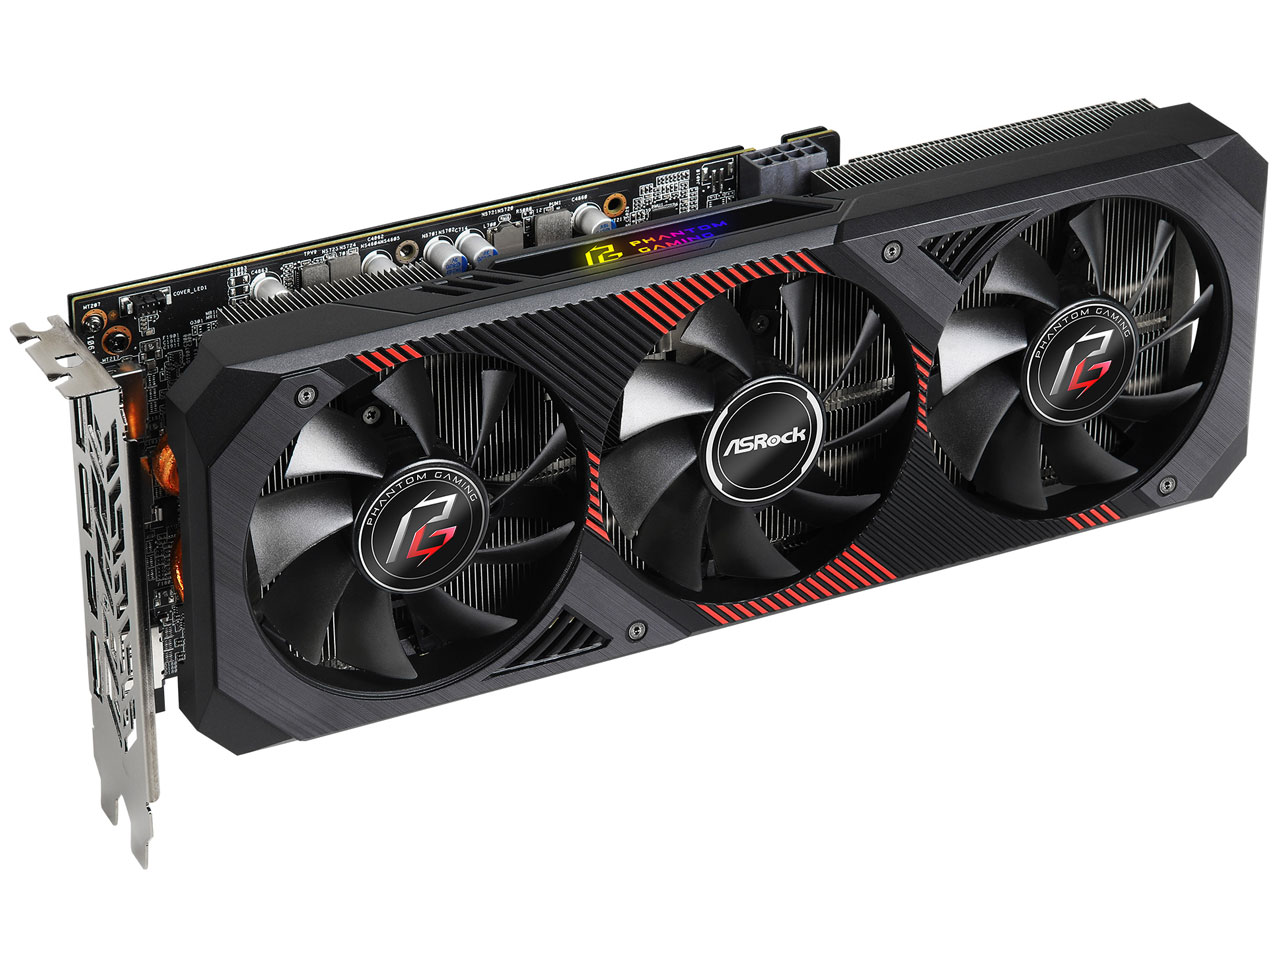 『本体2』 Radeon RX 5600 XT Phantom Gaming D3 6G OC [PCIExp 6GB] の製品画像